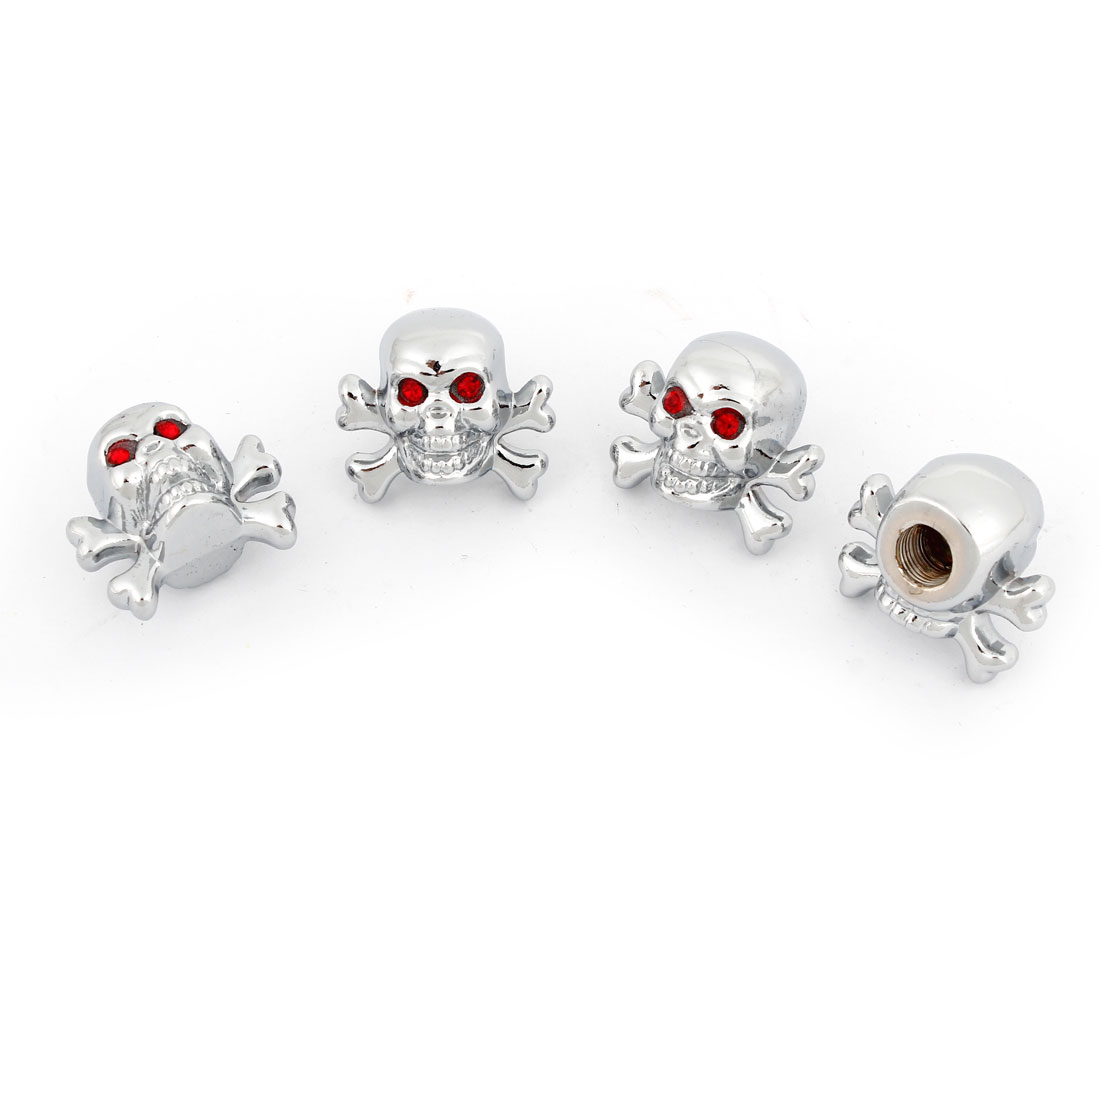 4 Pcs Auto Car Red Rhinestones Eyes Skull Shape Metal Tire Valve Dust Cap Cover Silver Tone